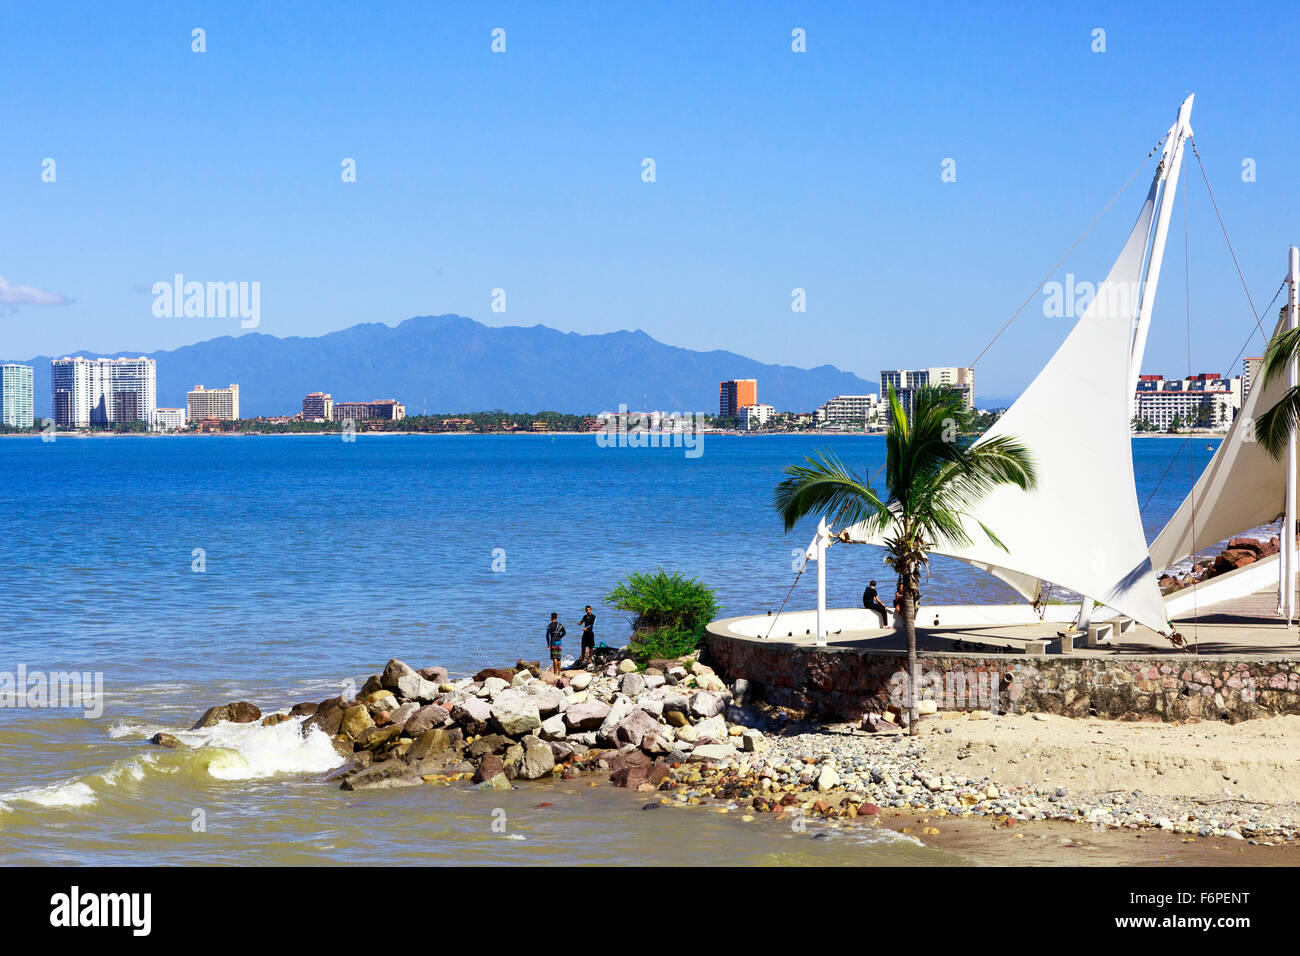 Bay of Banderas from the promenade and boardwalk at El centro district of Puerto Vallarta, Mexico with the Sierra Stock Photo